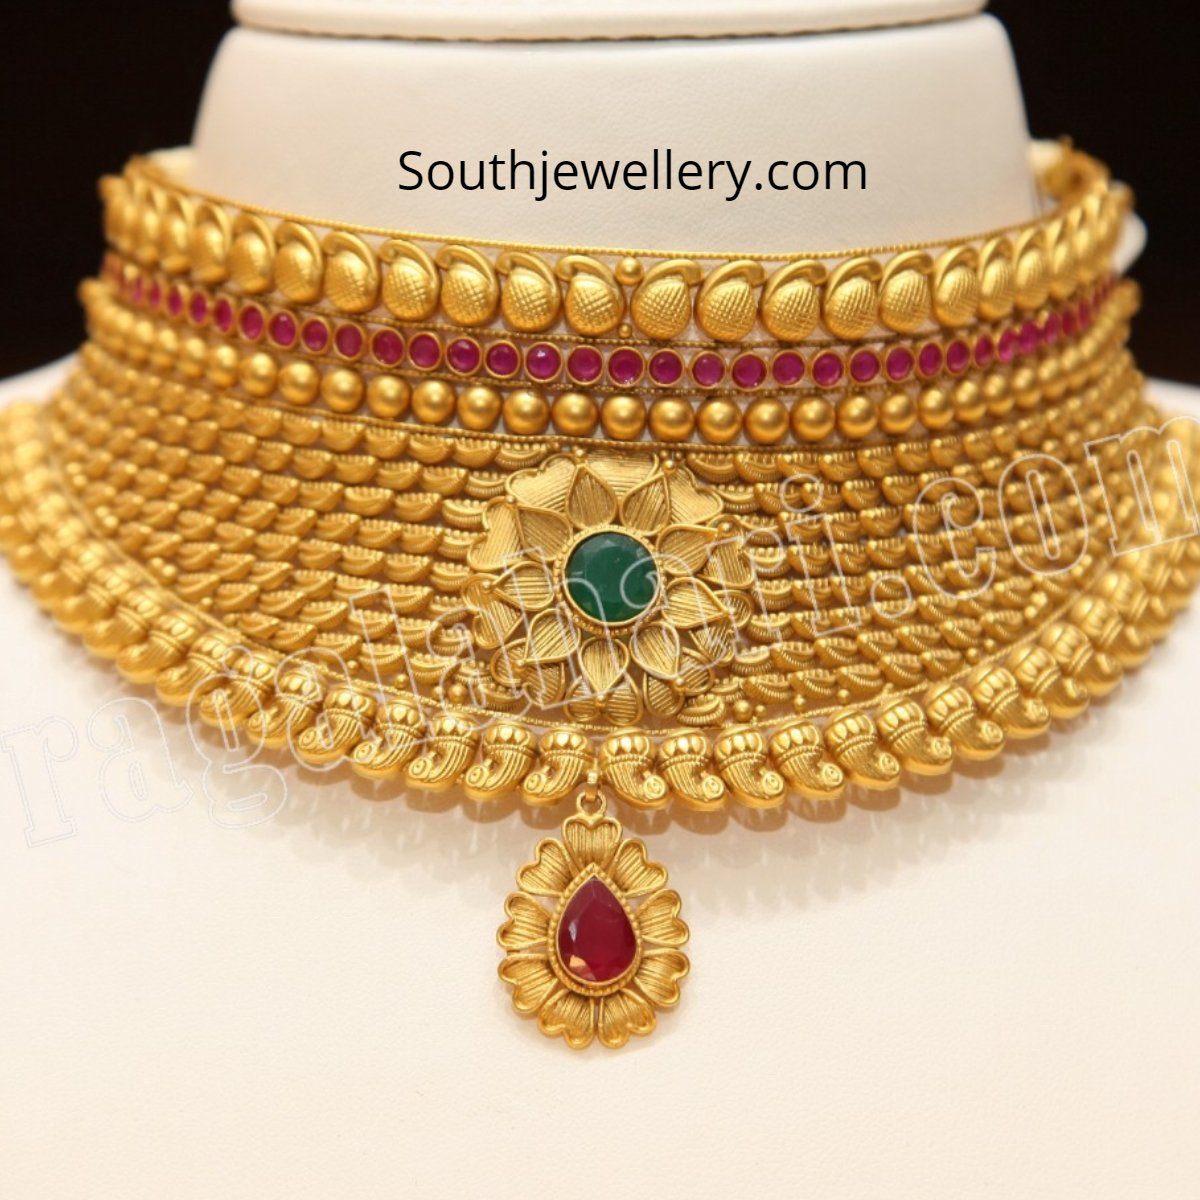 c7324a11d3fab Latest antique gold choker collection by Malabar Gold and Diamonds ...